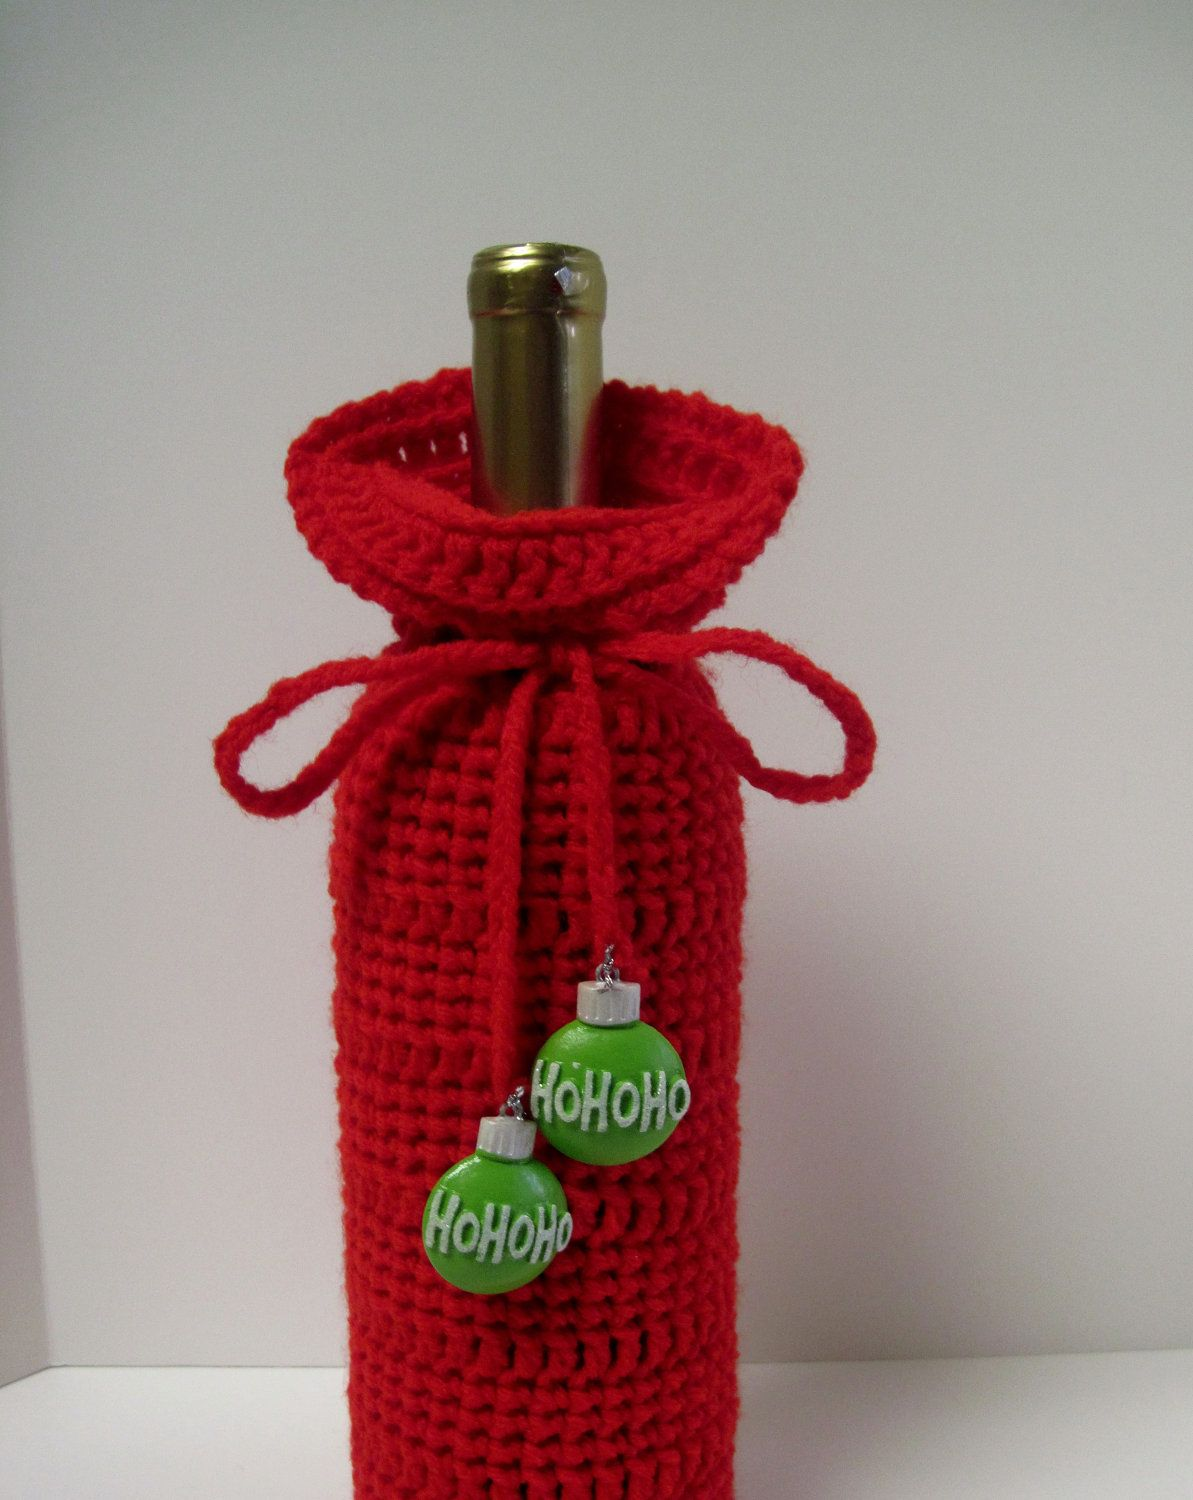 Image Detail For Red Crochet Christmas Wine Bottle Covers Sacks By Crochetcluster Christmas Wine Bottle Covers Christmas Crochet Holiday Crochet